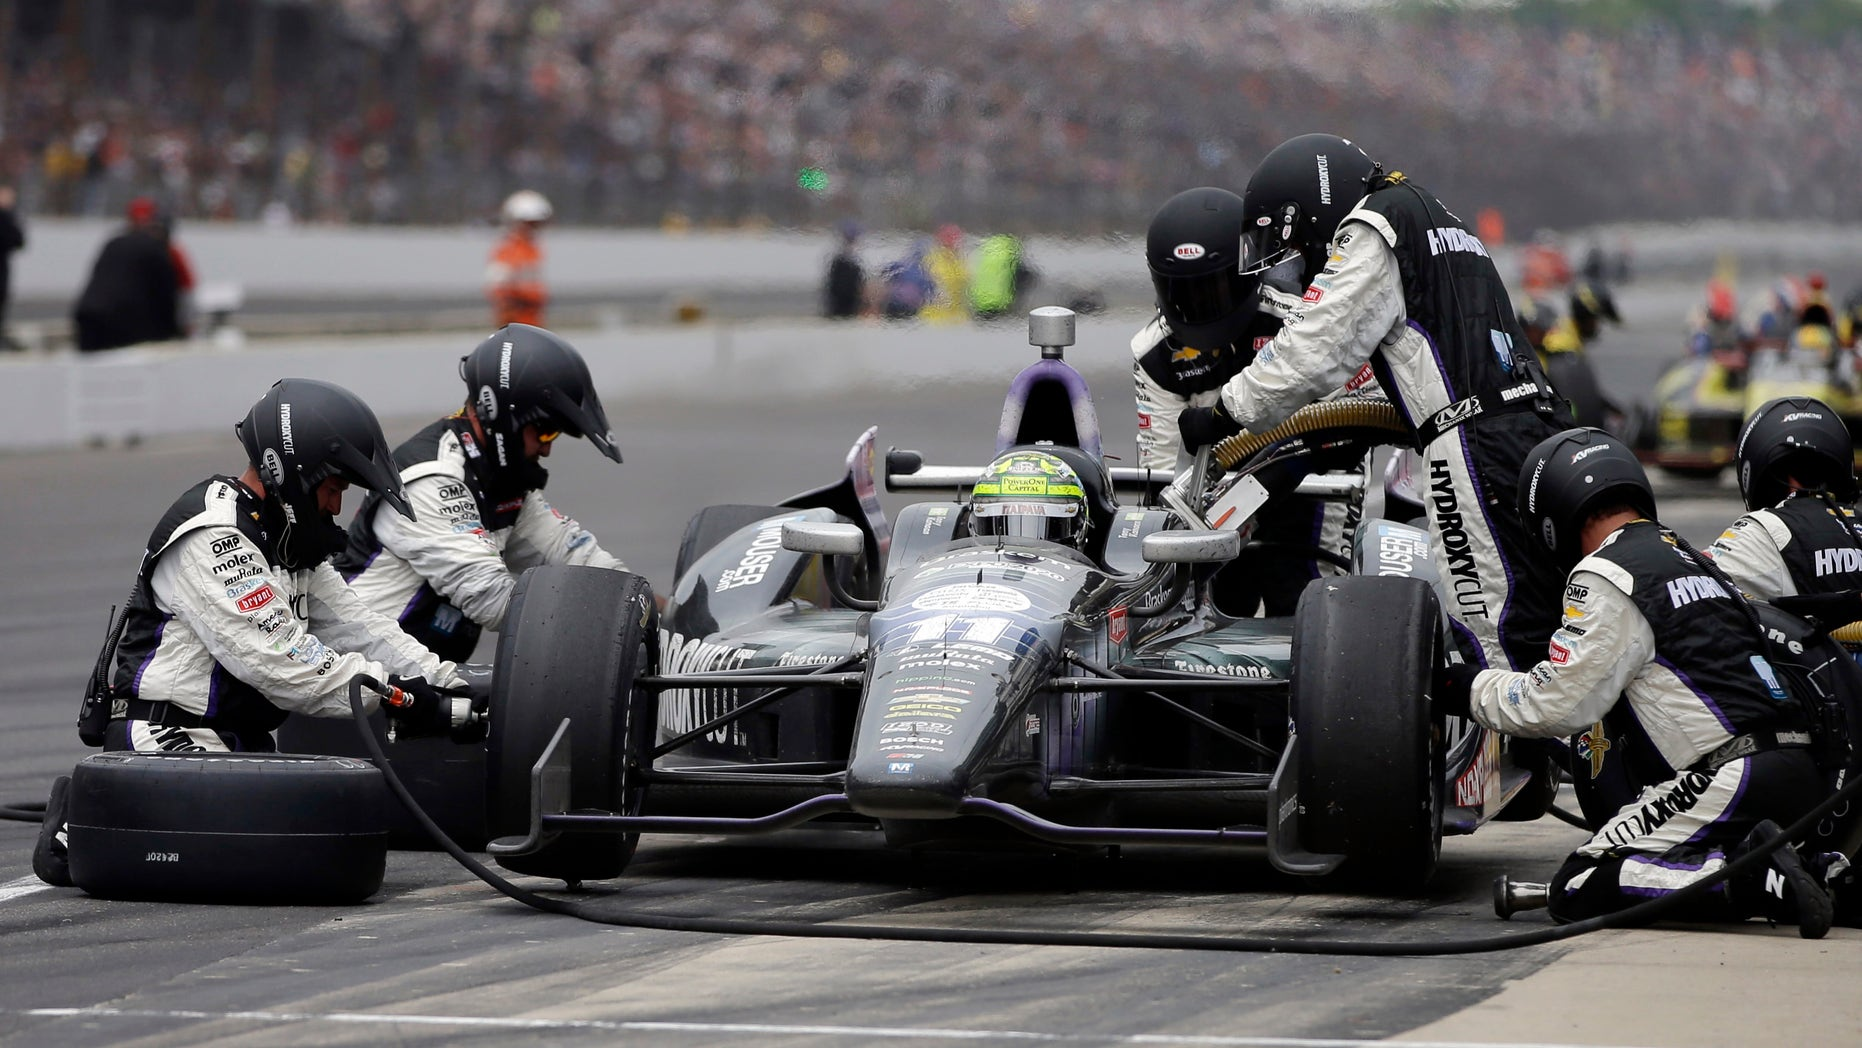 Tony Kanaan, of Brazil, makes a pit stop during the Indianapolis 500 auto race at the Indianapolis Motor Speedway in Indianapolis Sunday, May 26, 2013. (AP Photo/Darron Cummings)